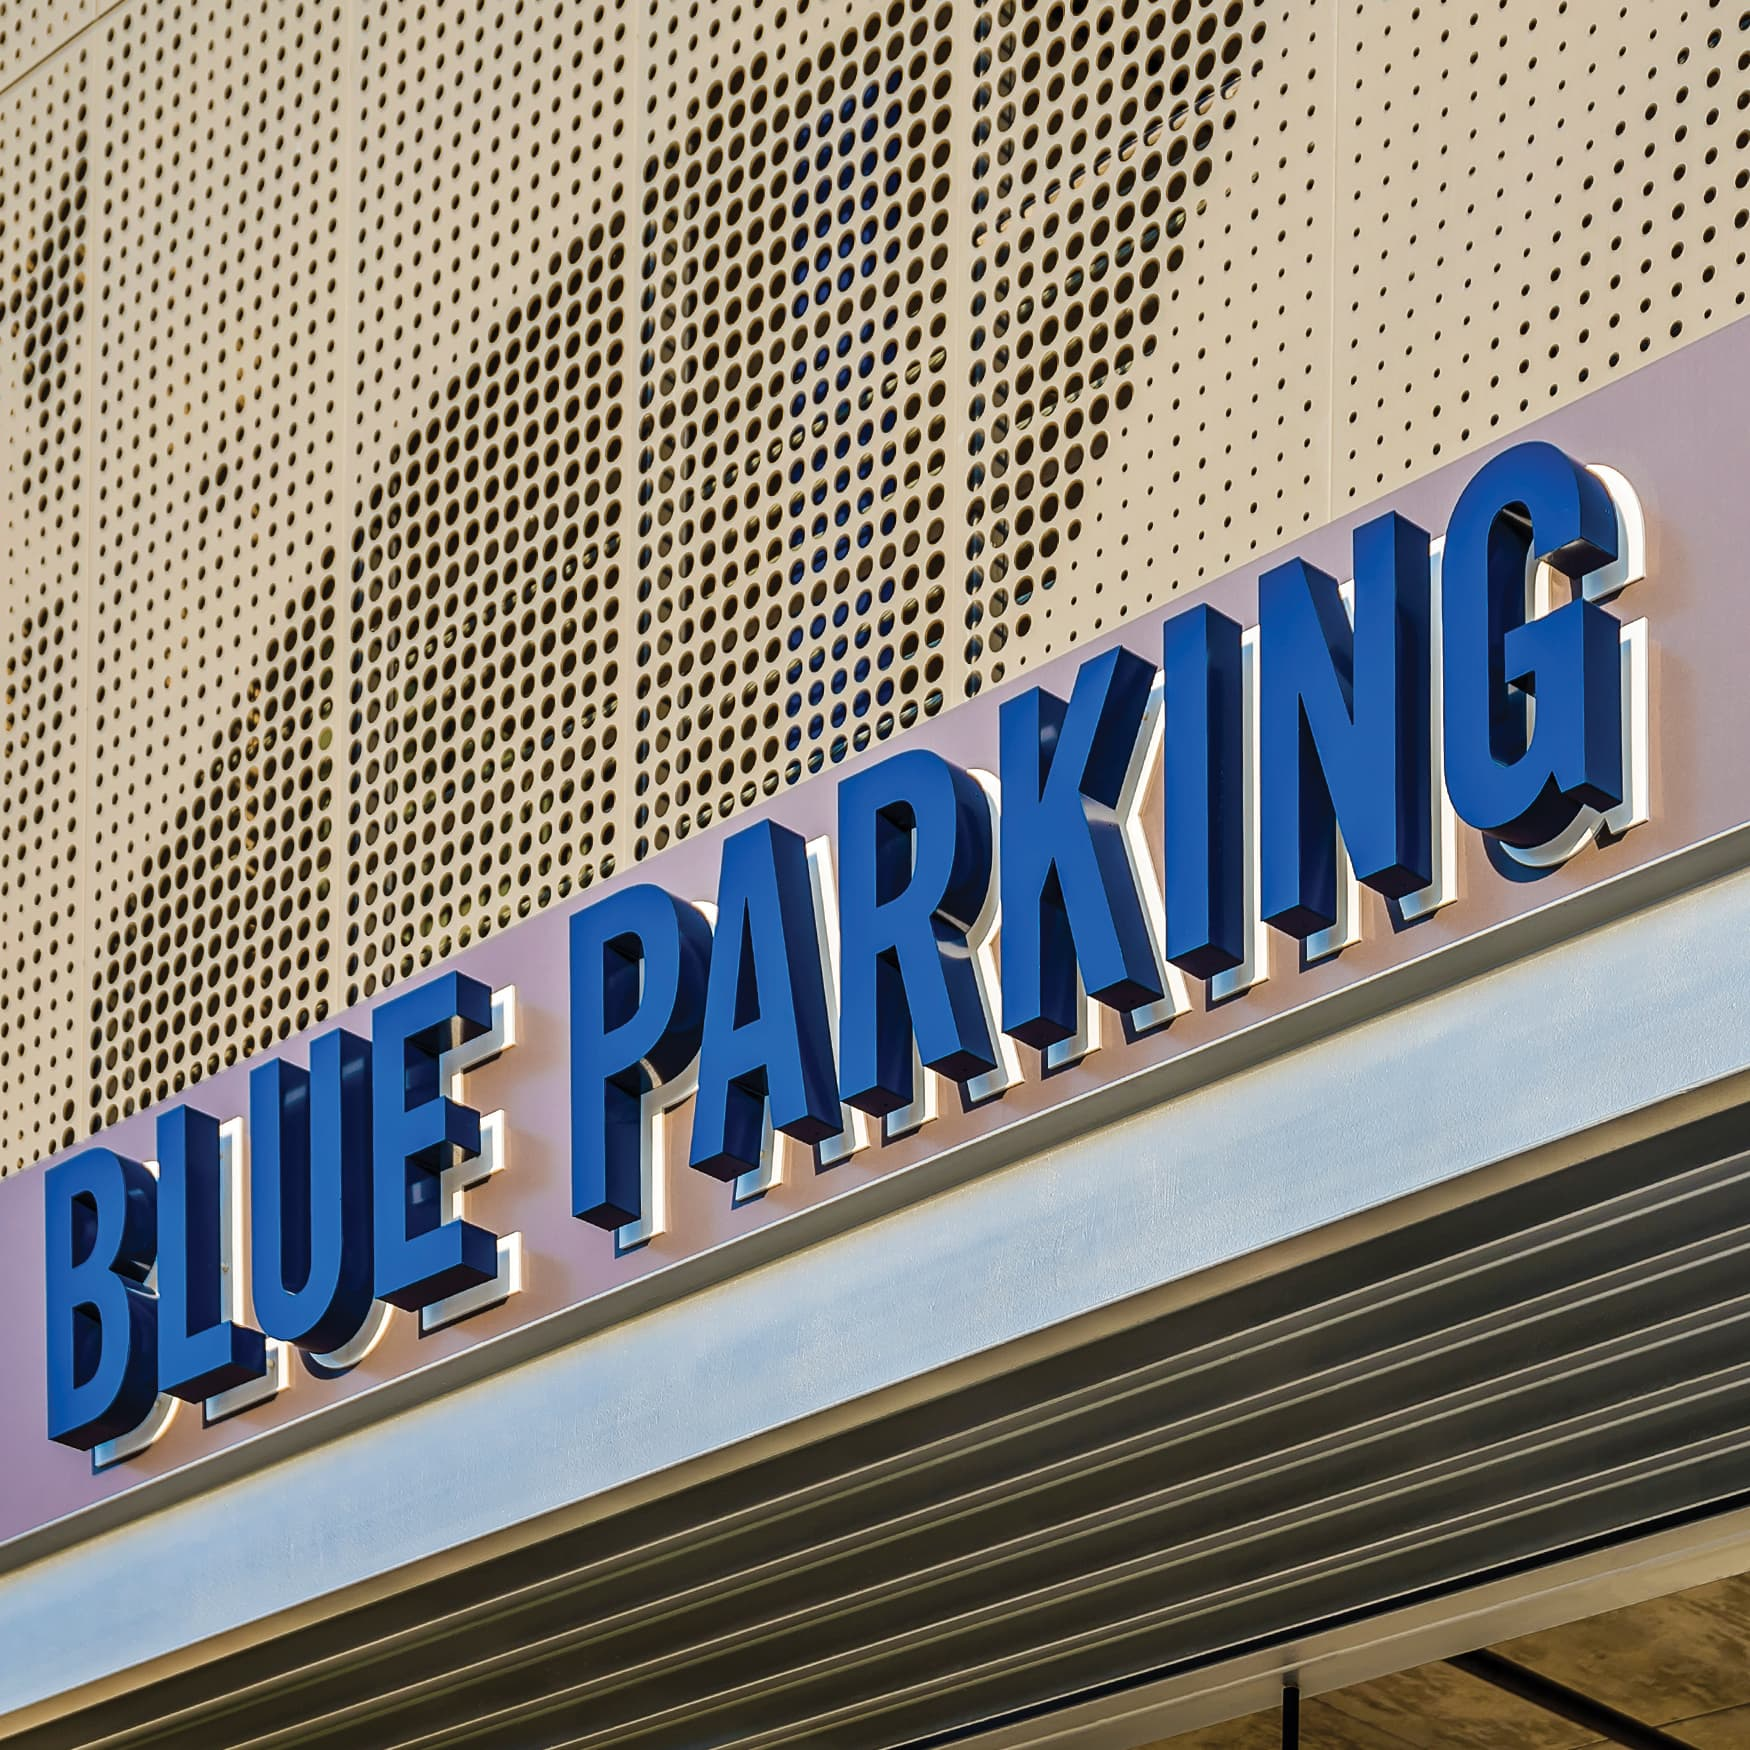 RSM Design Parking Garage Identity and Wayfinding Signage for The Star: Home of the Dallas Cowboys